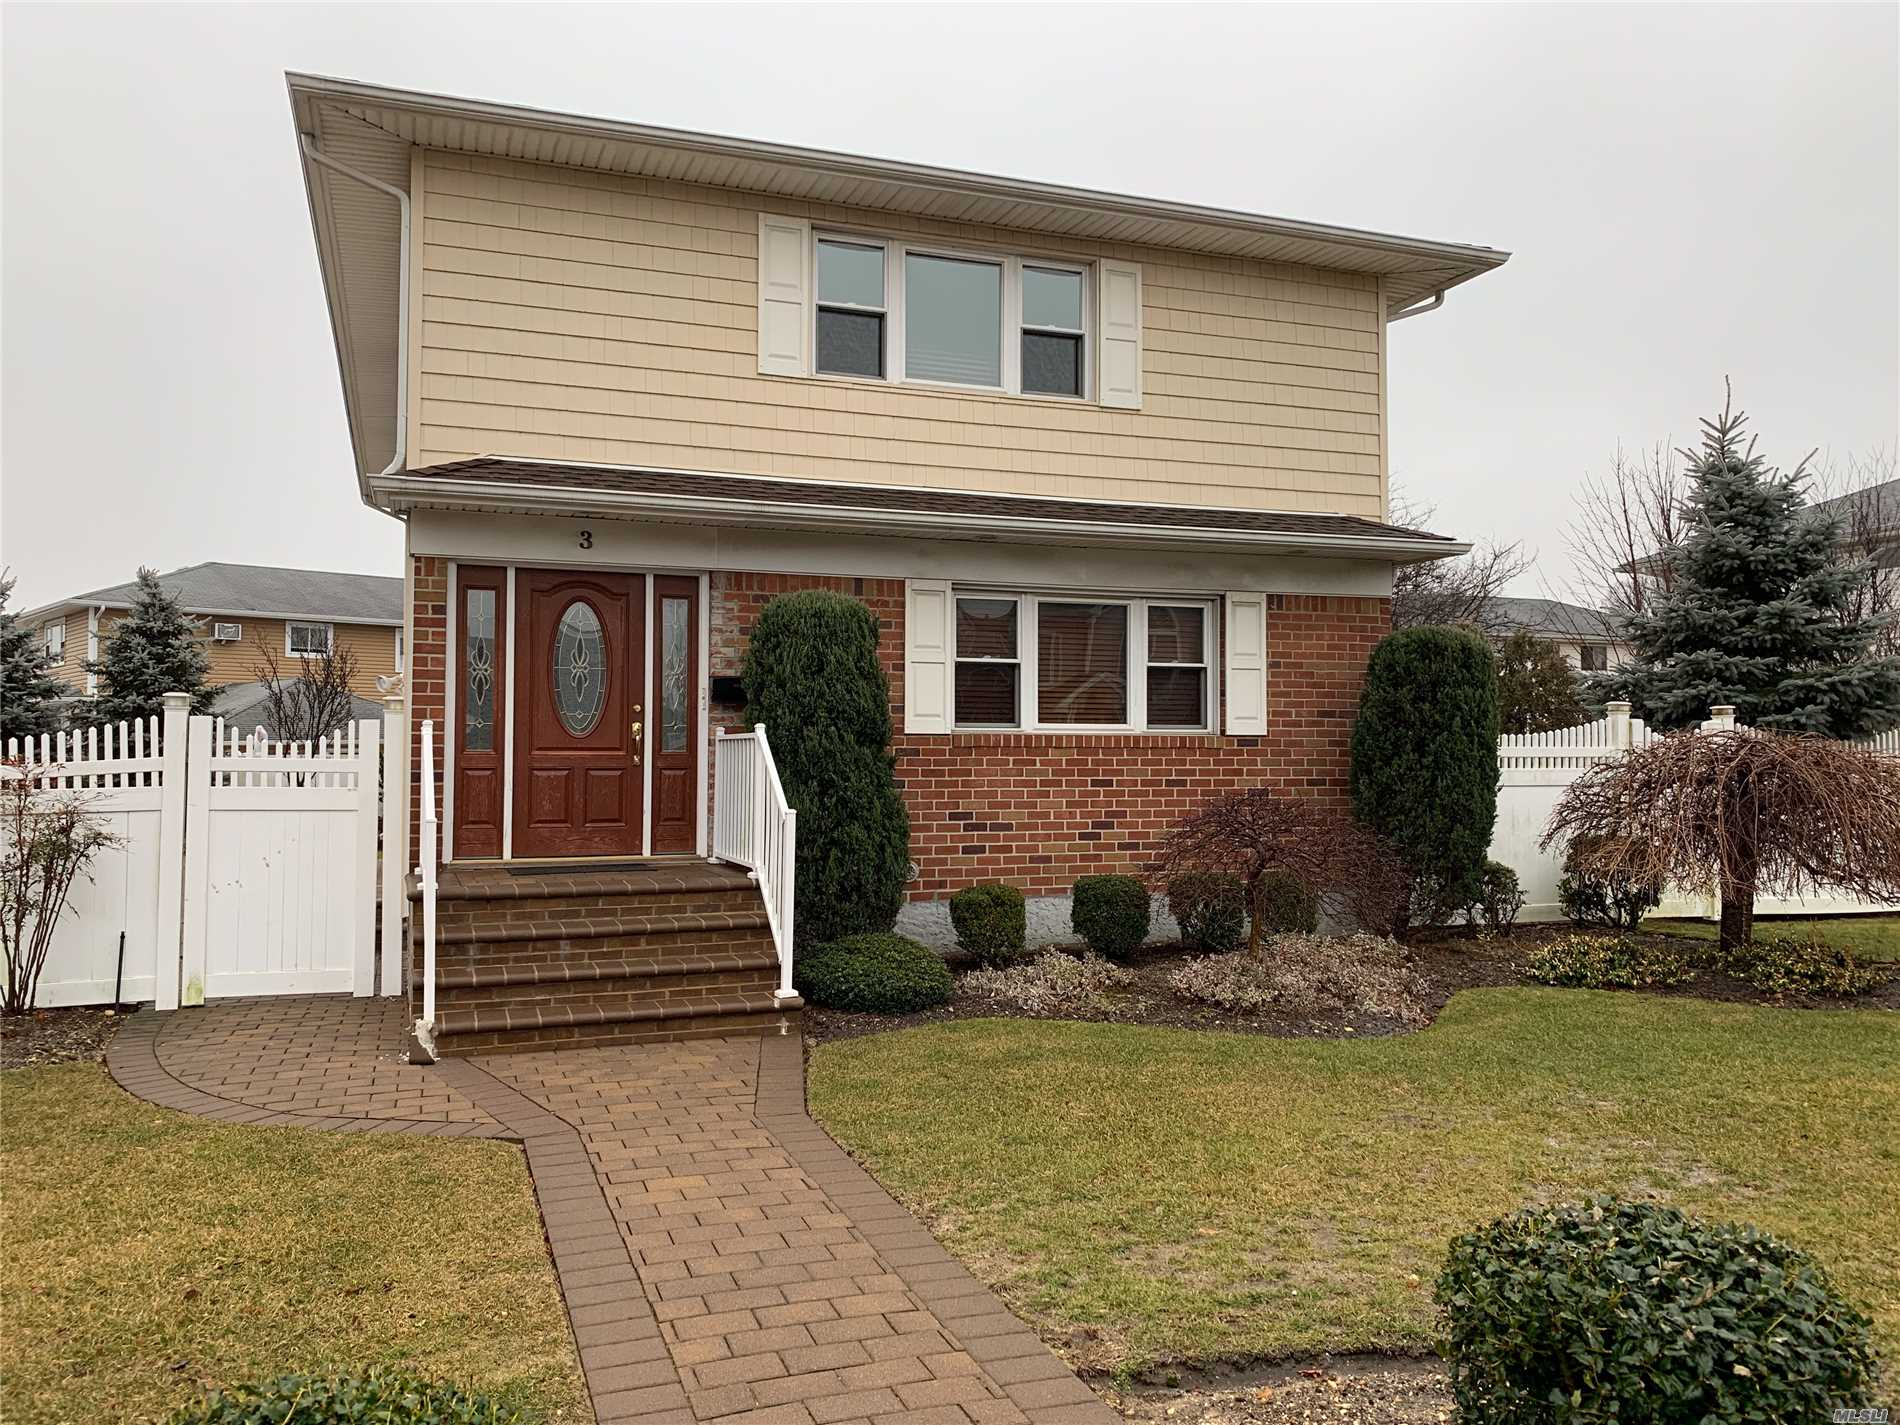 Completely Updated 3 Br 1.5 Bath Apartment On Main Floor. Master Br With .5 Bath. Use Of Yard. Rent Includes Gas For Heat And Cooking, And Water. Tenant Responsible For Electric (Separate Meter) And Cable. Close To All.